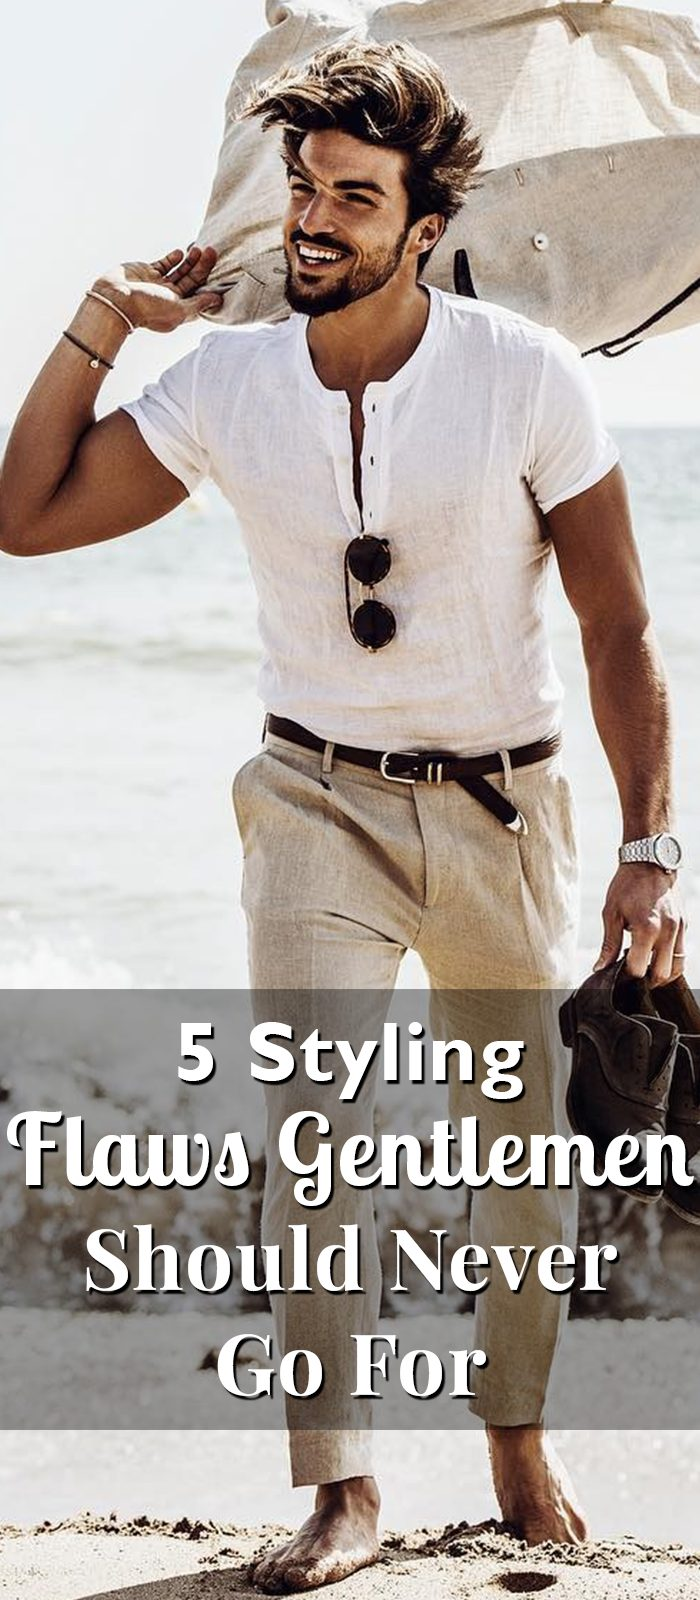 5 Styling Flaws Gentlemen Should Never Go For